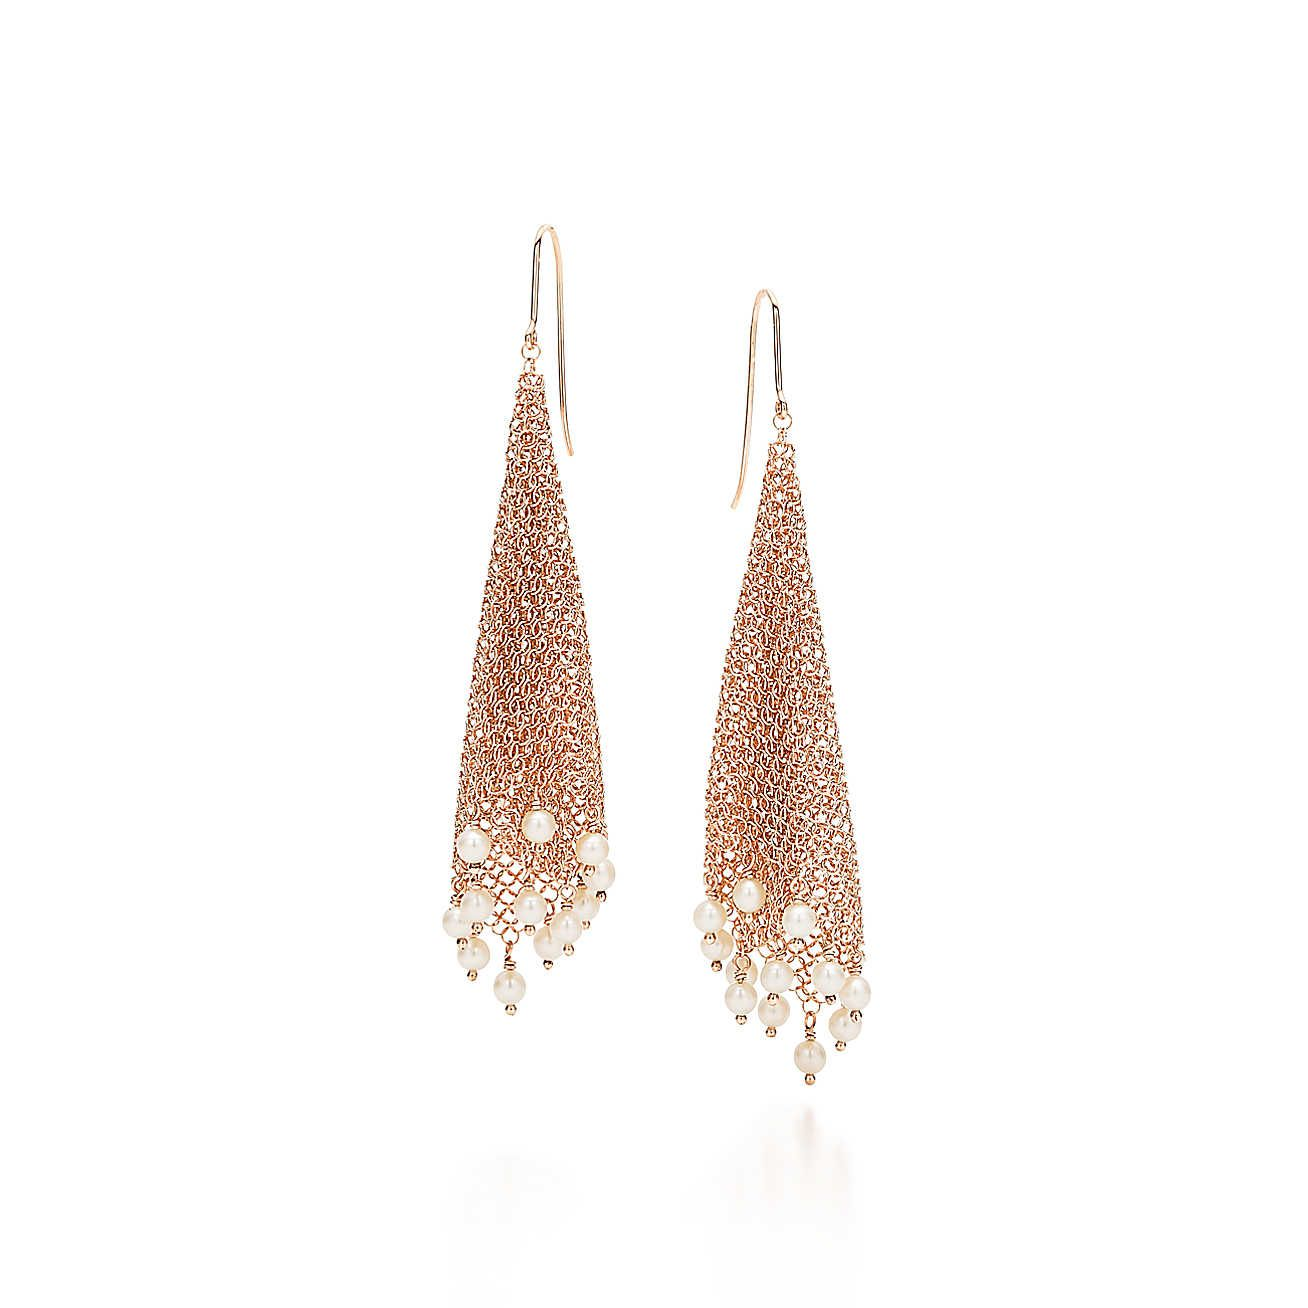 04c98a7fcdf505 Elsa Peretti®:Mesh Fringe Earrings | Brunch at Tiffany's | Earrings ...